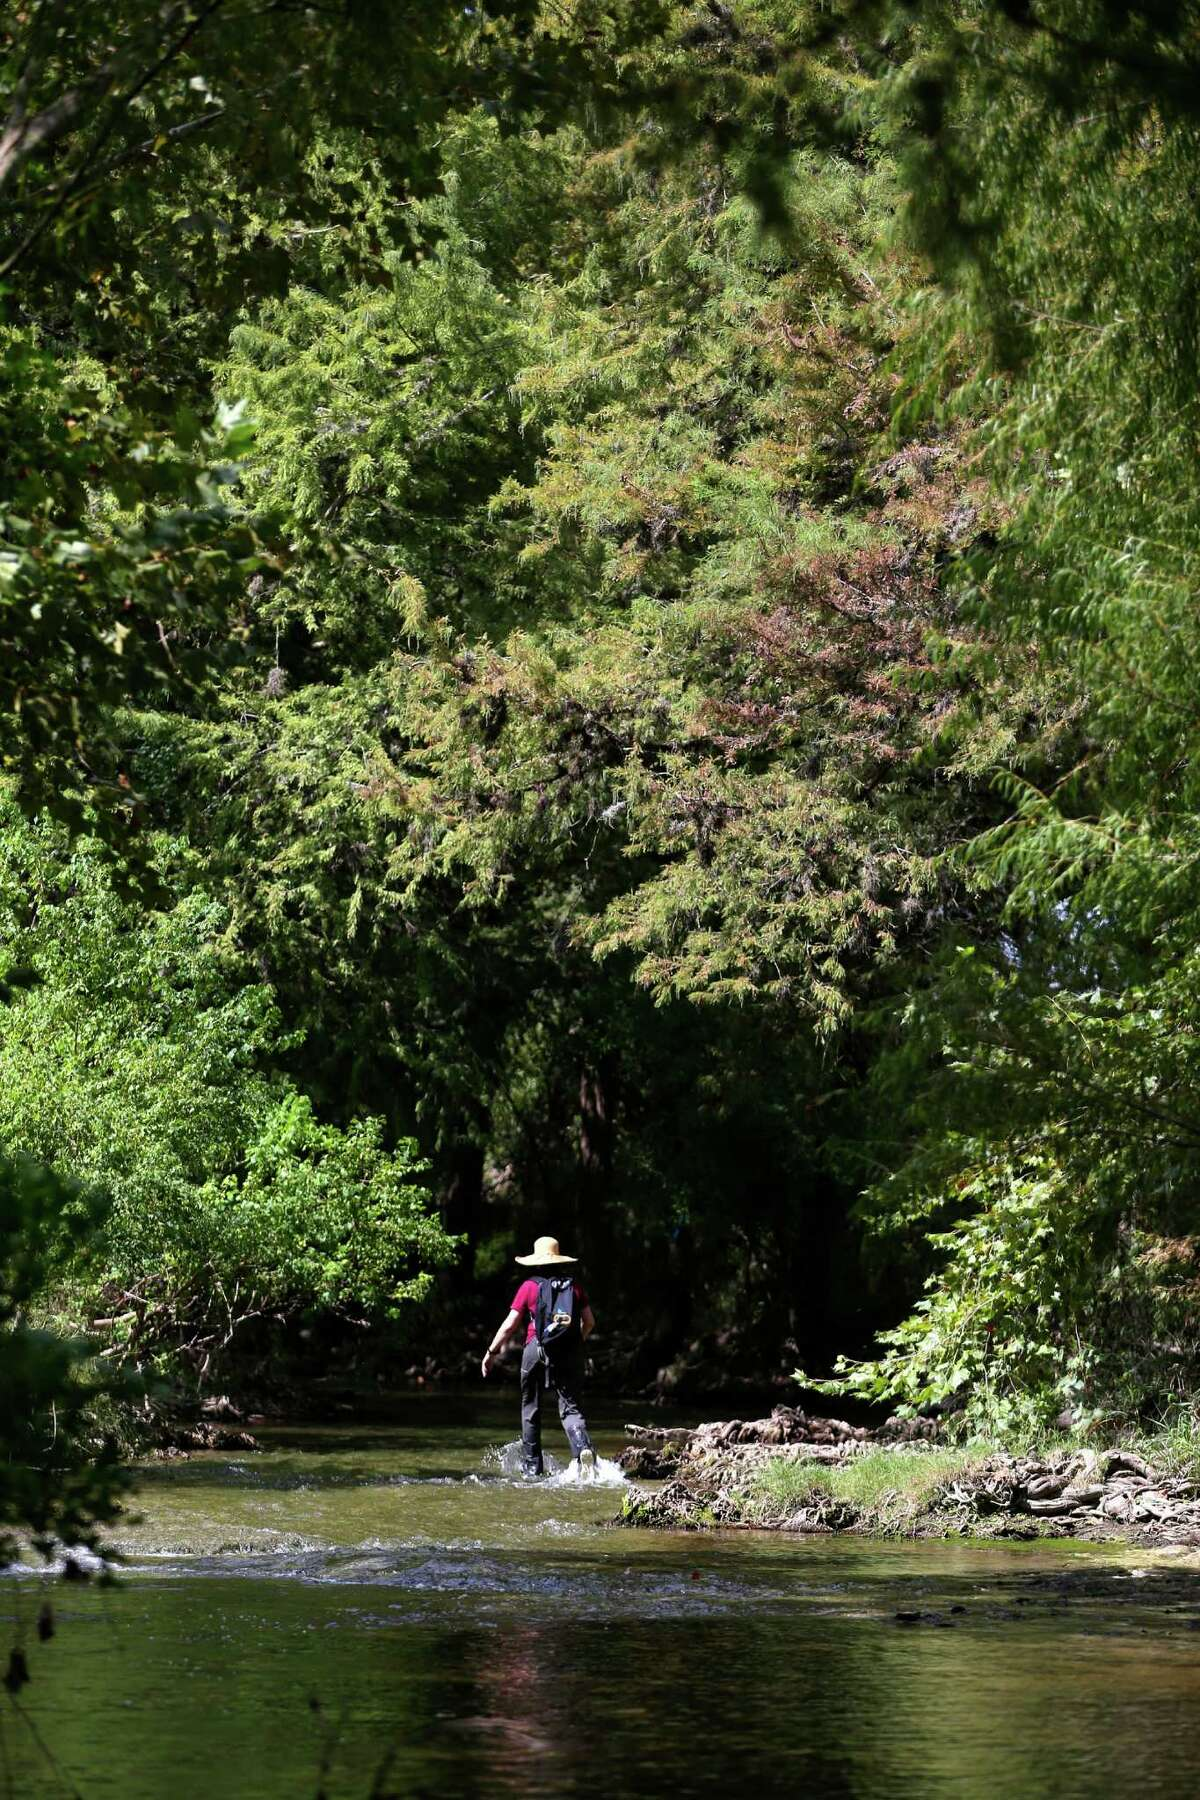 ABOVE: Texas Parks and Wildlife Department Water Resources employee Anne Rogers walks Wednesday, Sept. 14, 2016 up Cibolo Creek on the Cibolo Preserve. Bill Lende, who owned the land and established the preserve located just down stream from the Cibolo Nature Center in Boerne, died Friday.